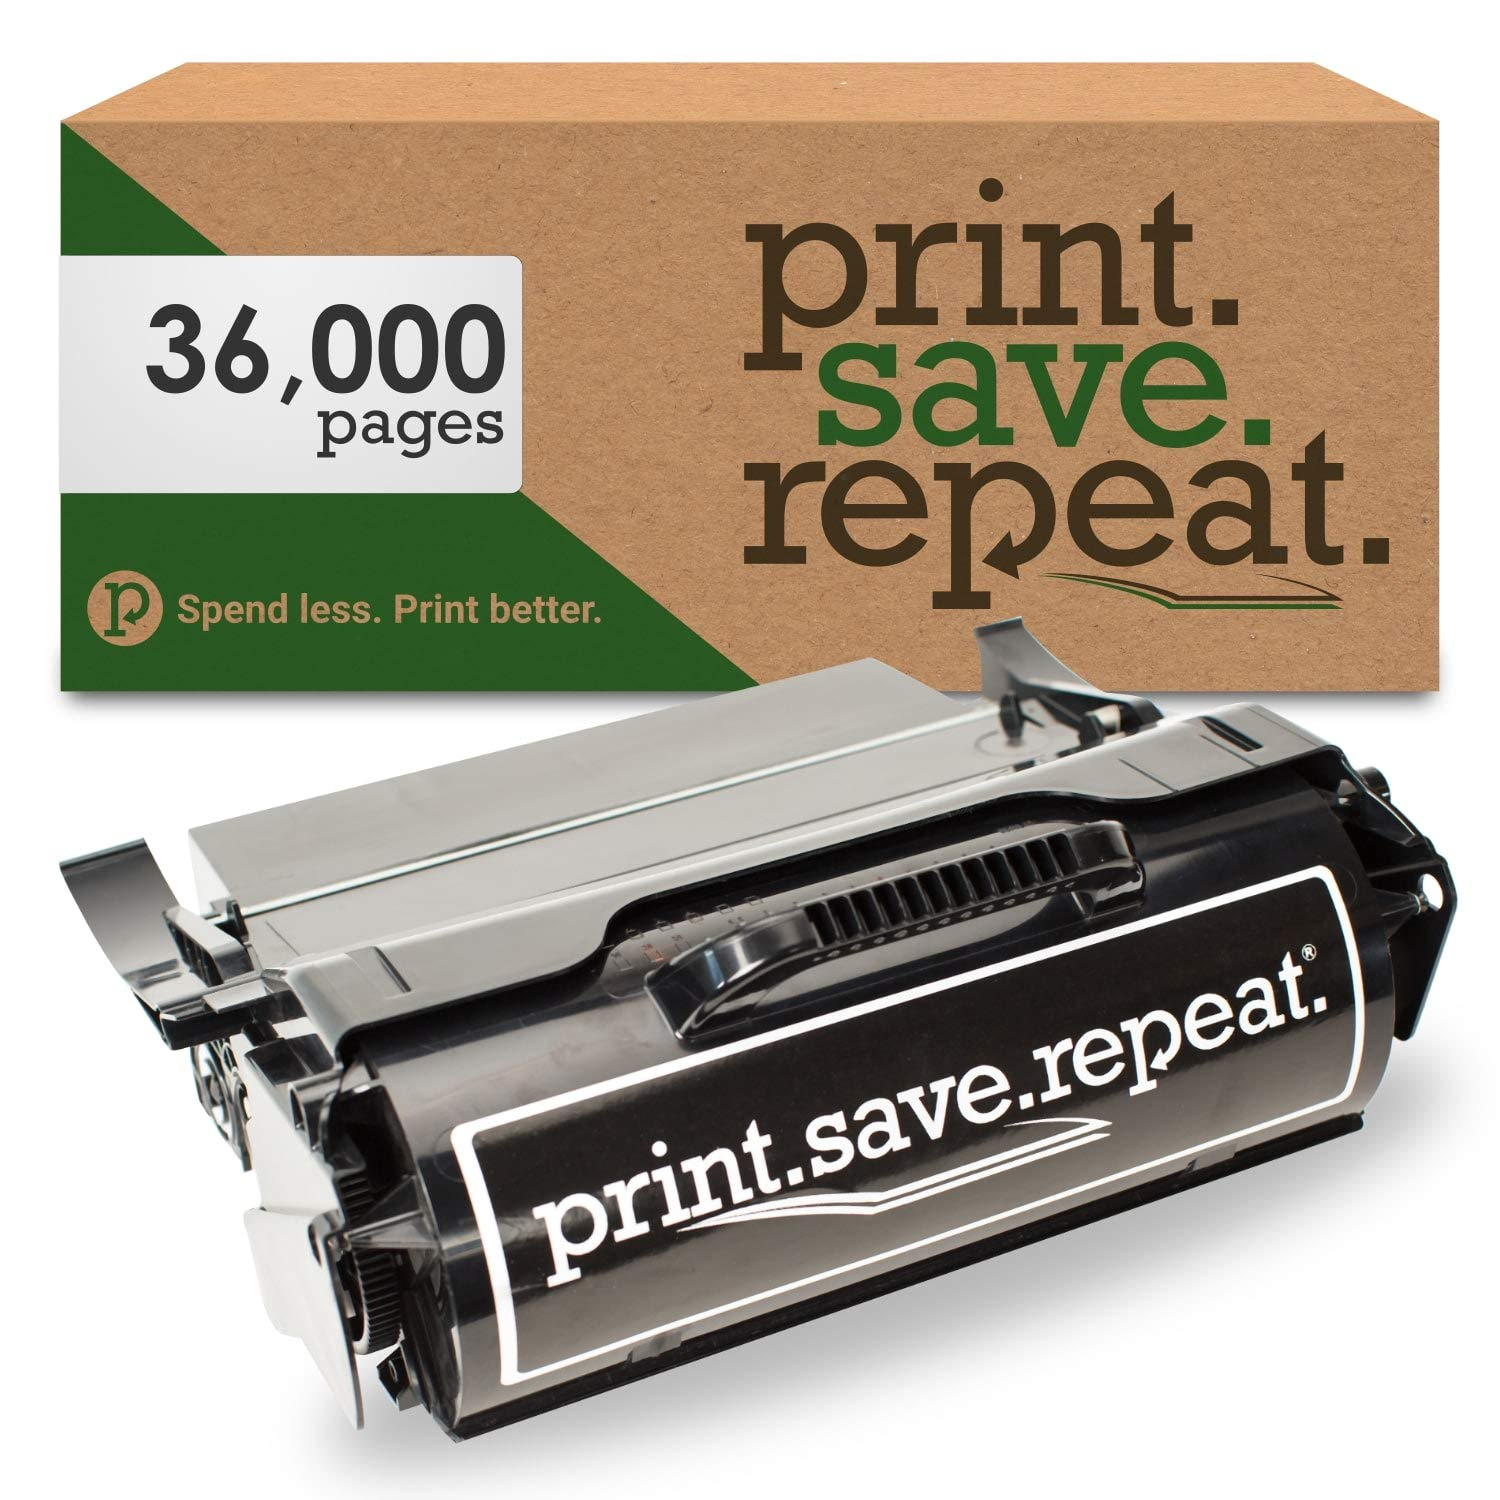 Print.Save.Repeat. Lexmark T654X21A Extra High Yield Remanufactured Toner Cartridge for T654, T656, TS654, TS656 [36,000 Pages]